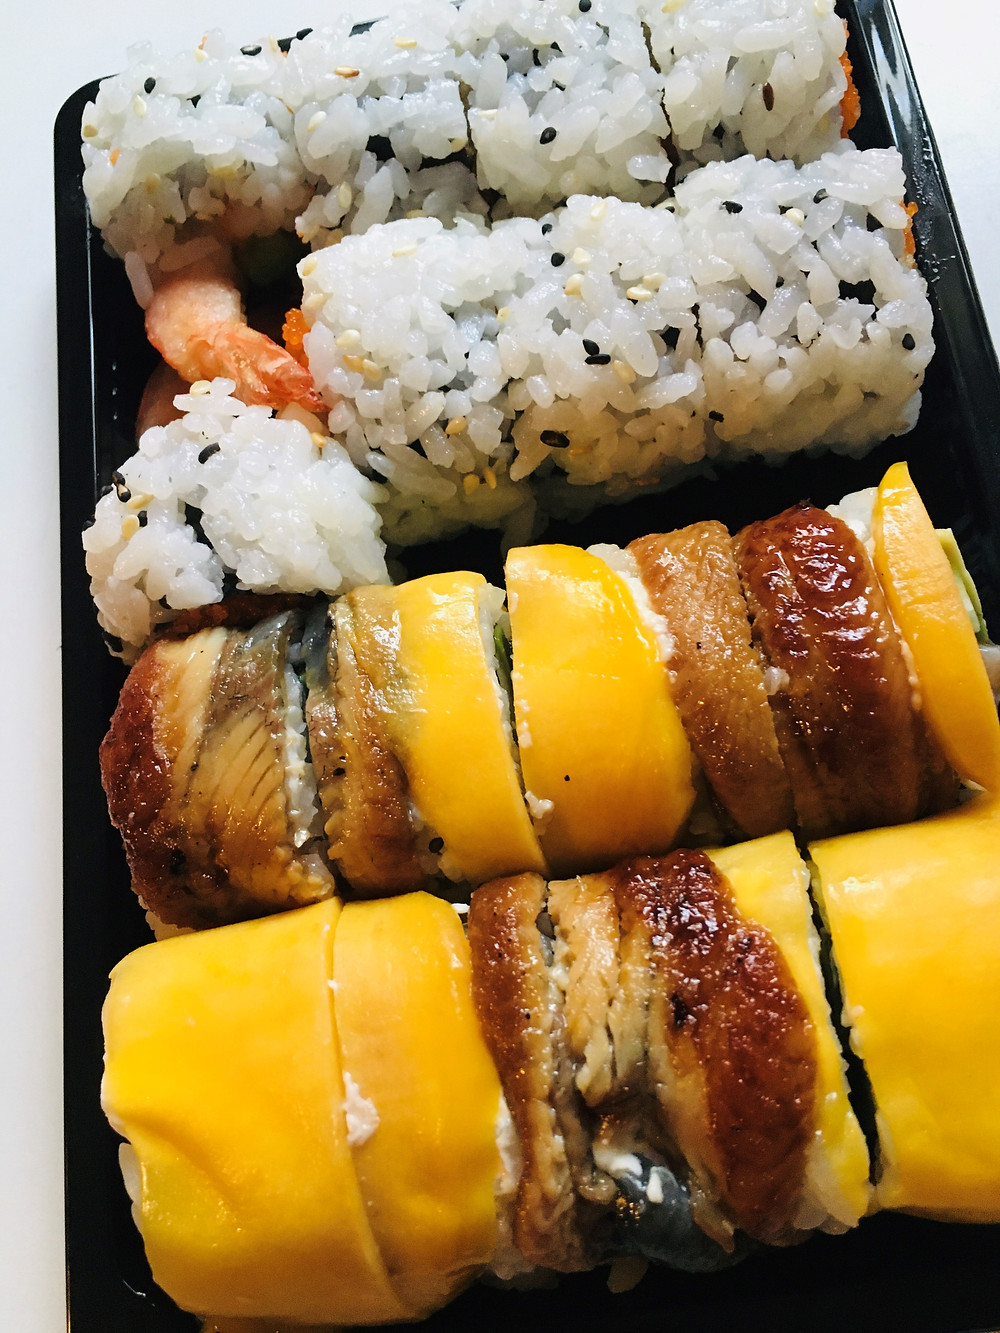 Sushi from Kita Modern Japanese